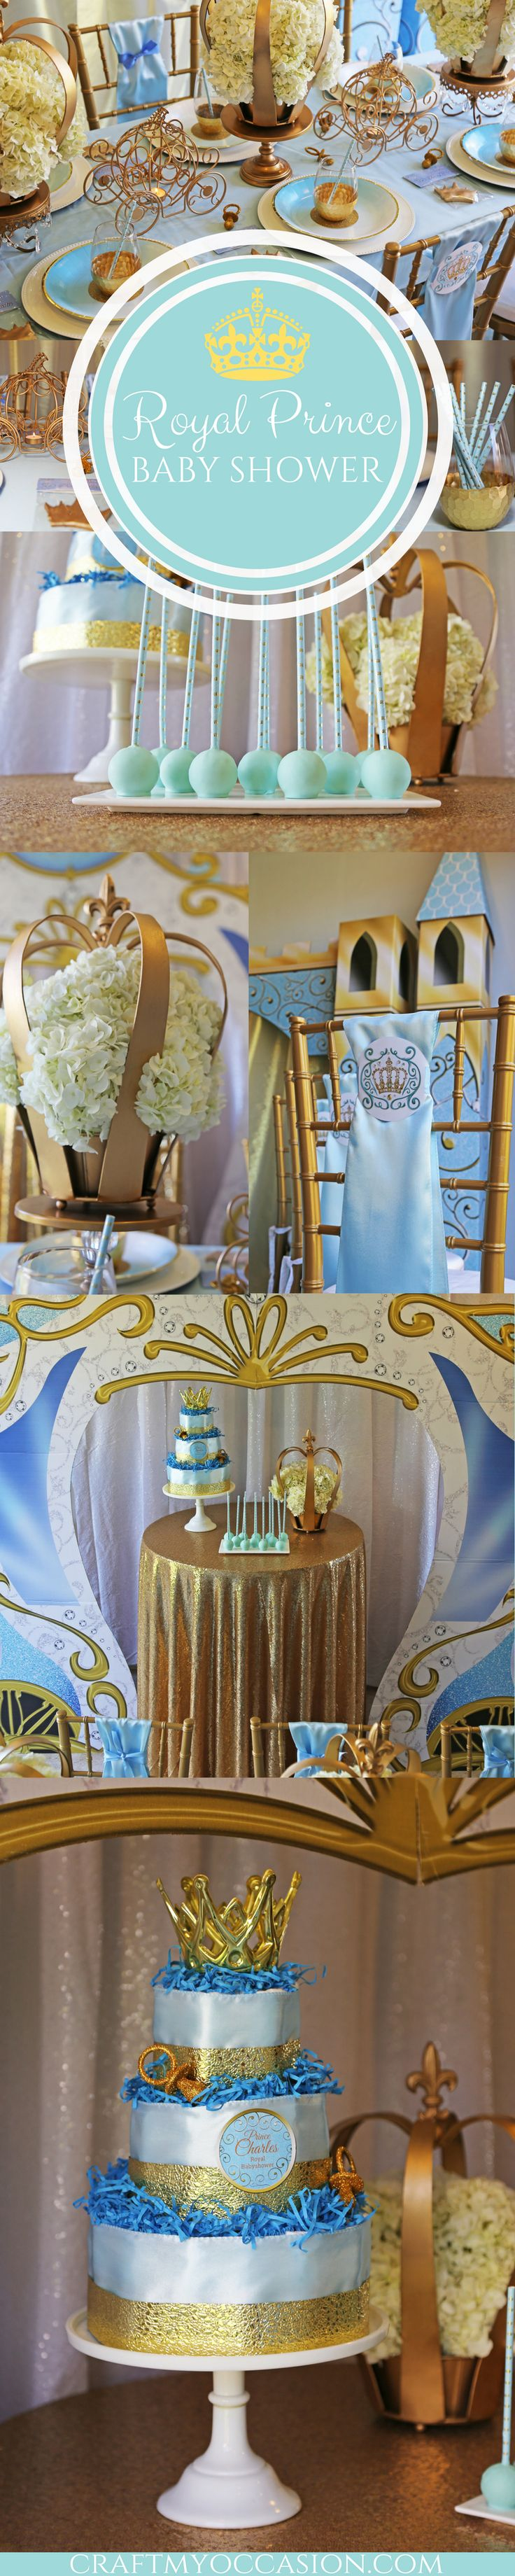 Are you ready for a Royal Baby Shower? Well, adjust your crown and sound the horns, let's celebrate the arrival of Prince Charles! I absolutely loved styling this baby shower in partnership with Shindigz. Every royal celebration involves gold, and this baby shower does not disappoint. The Fairytale Dreams collection makes it easy to design your own princely party! Read more at craftmyoccasion.com